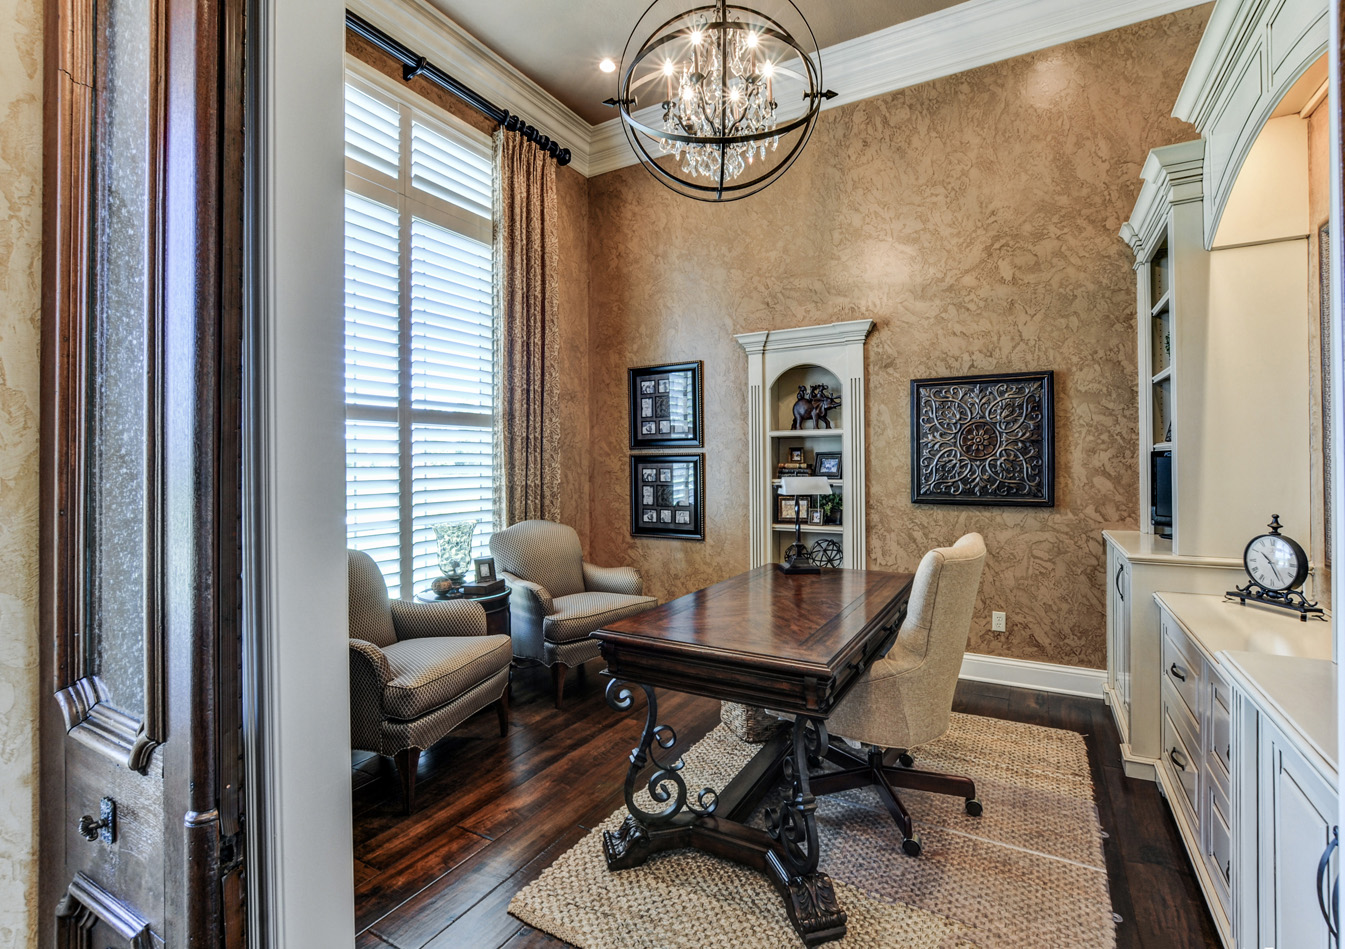 built-by-brett-custom-home-springfield-mo-13735-lawrence-2100-031.jpg